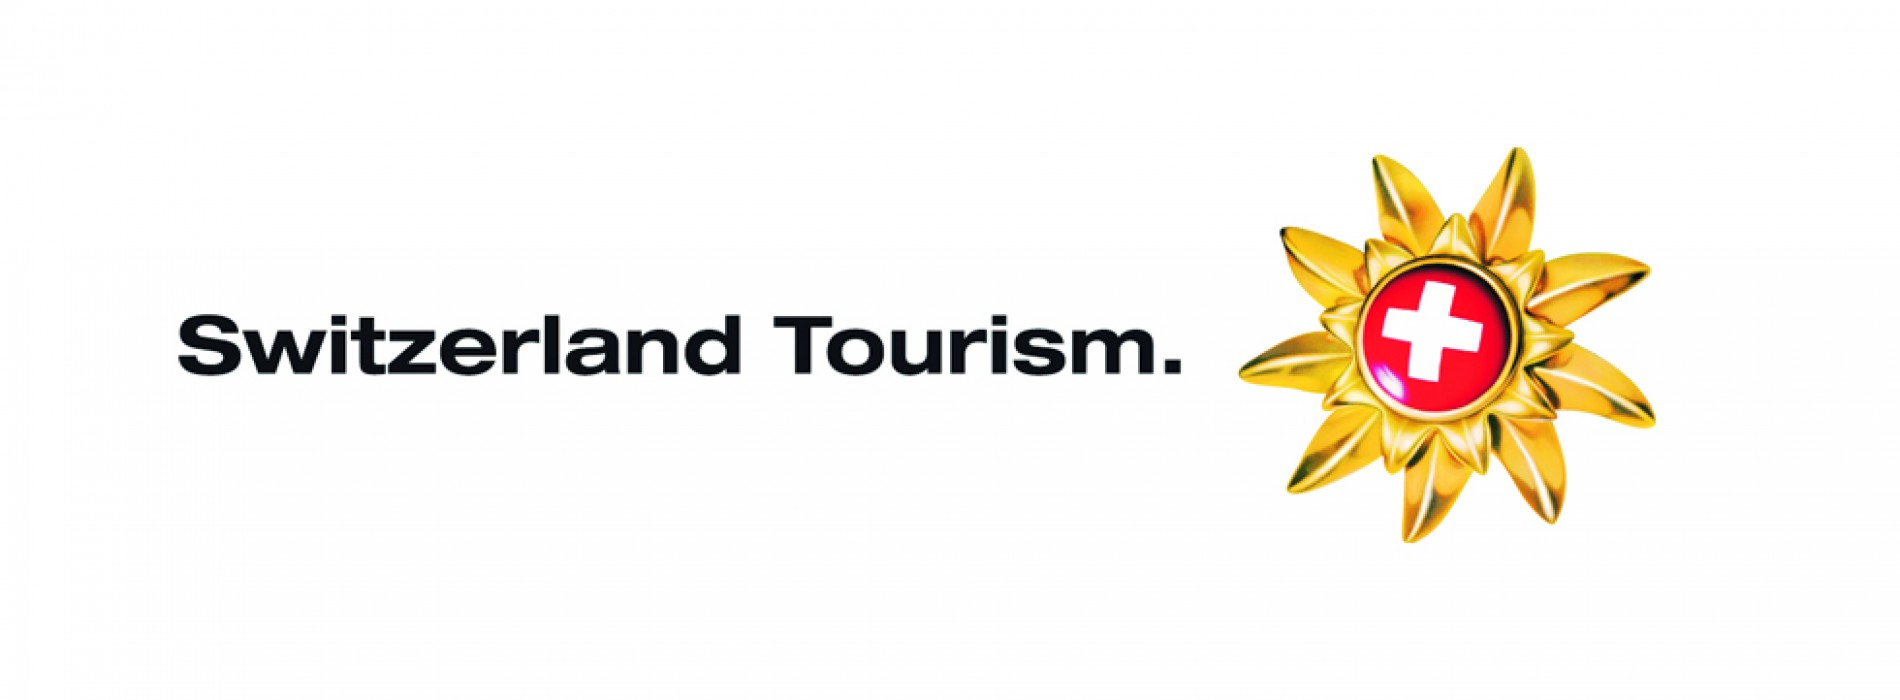 Switzerland Tourism launches the new campaigns for Winter and Summer 2017